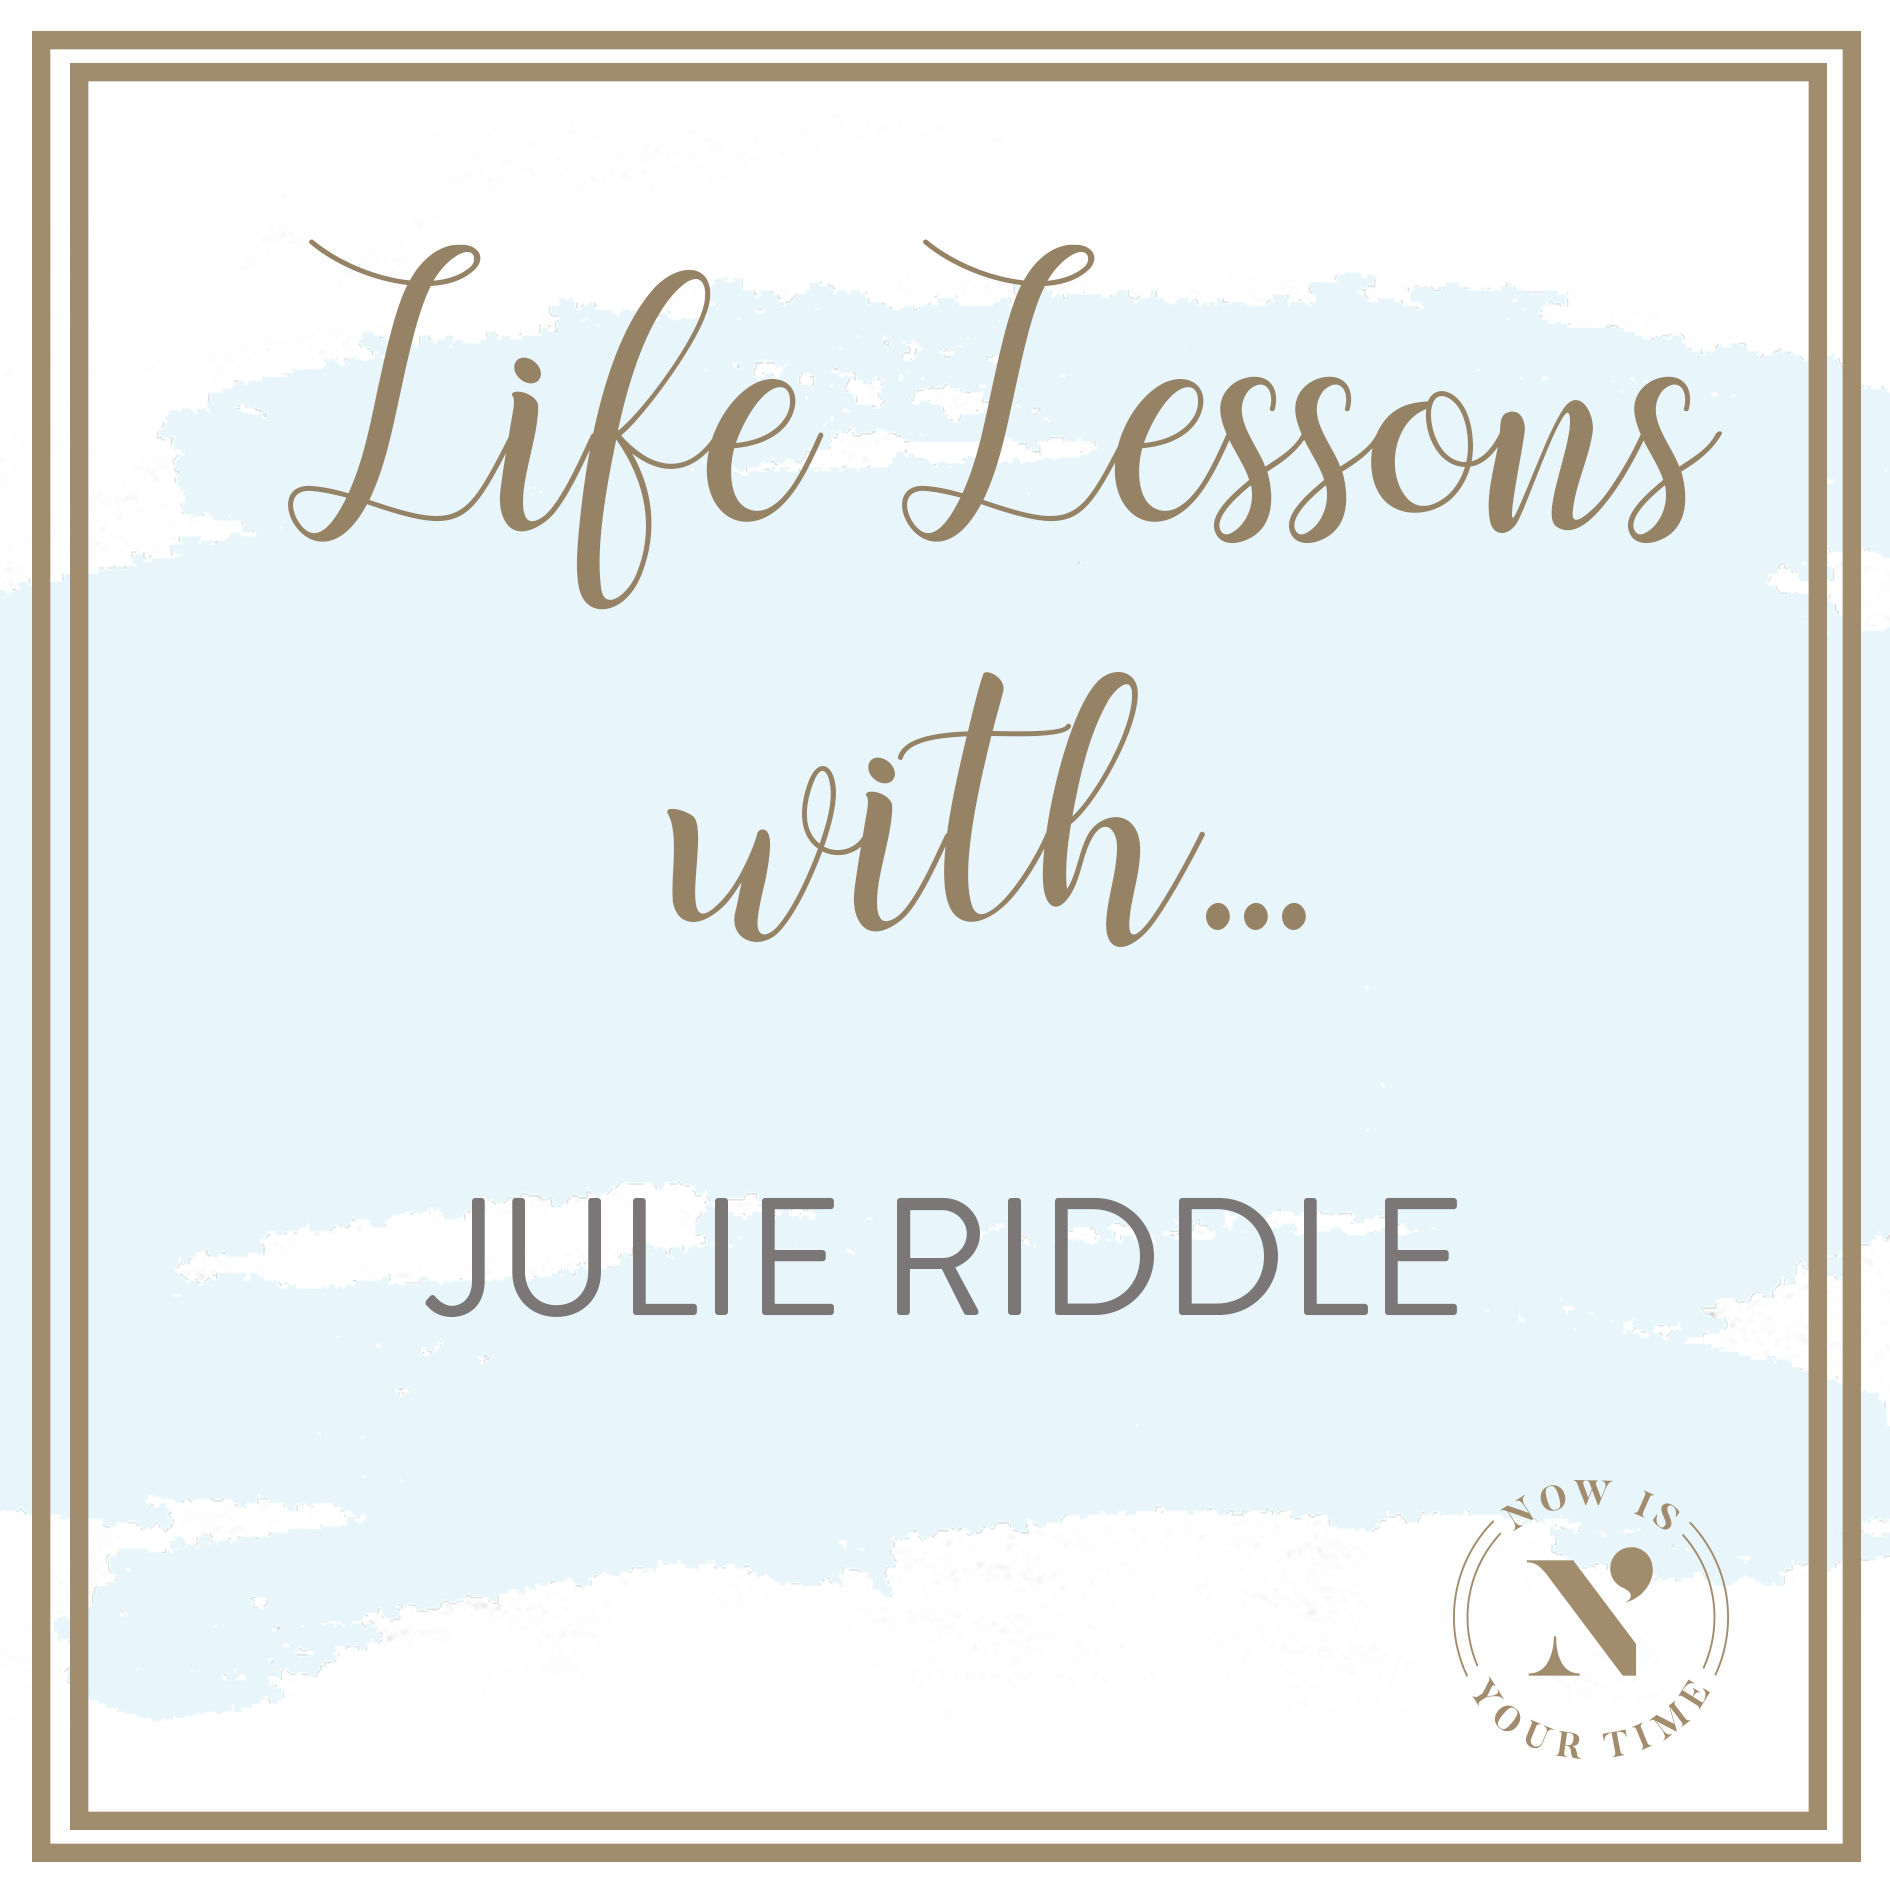 Life Lessons with podcast artwork - Julie Riddle.png